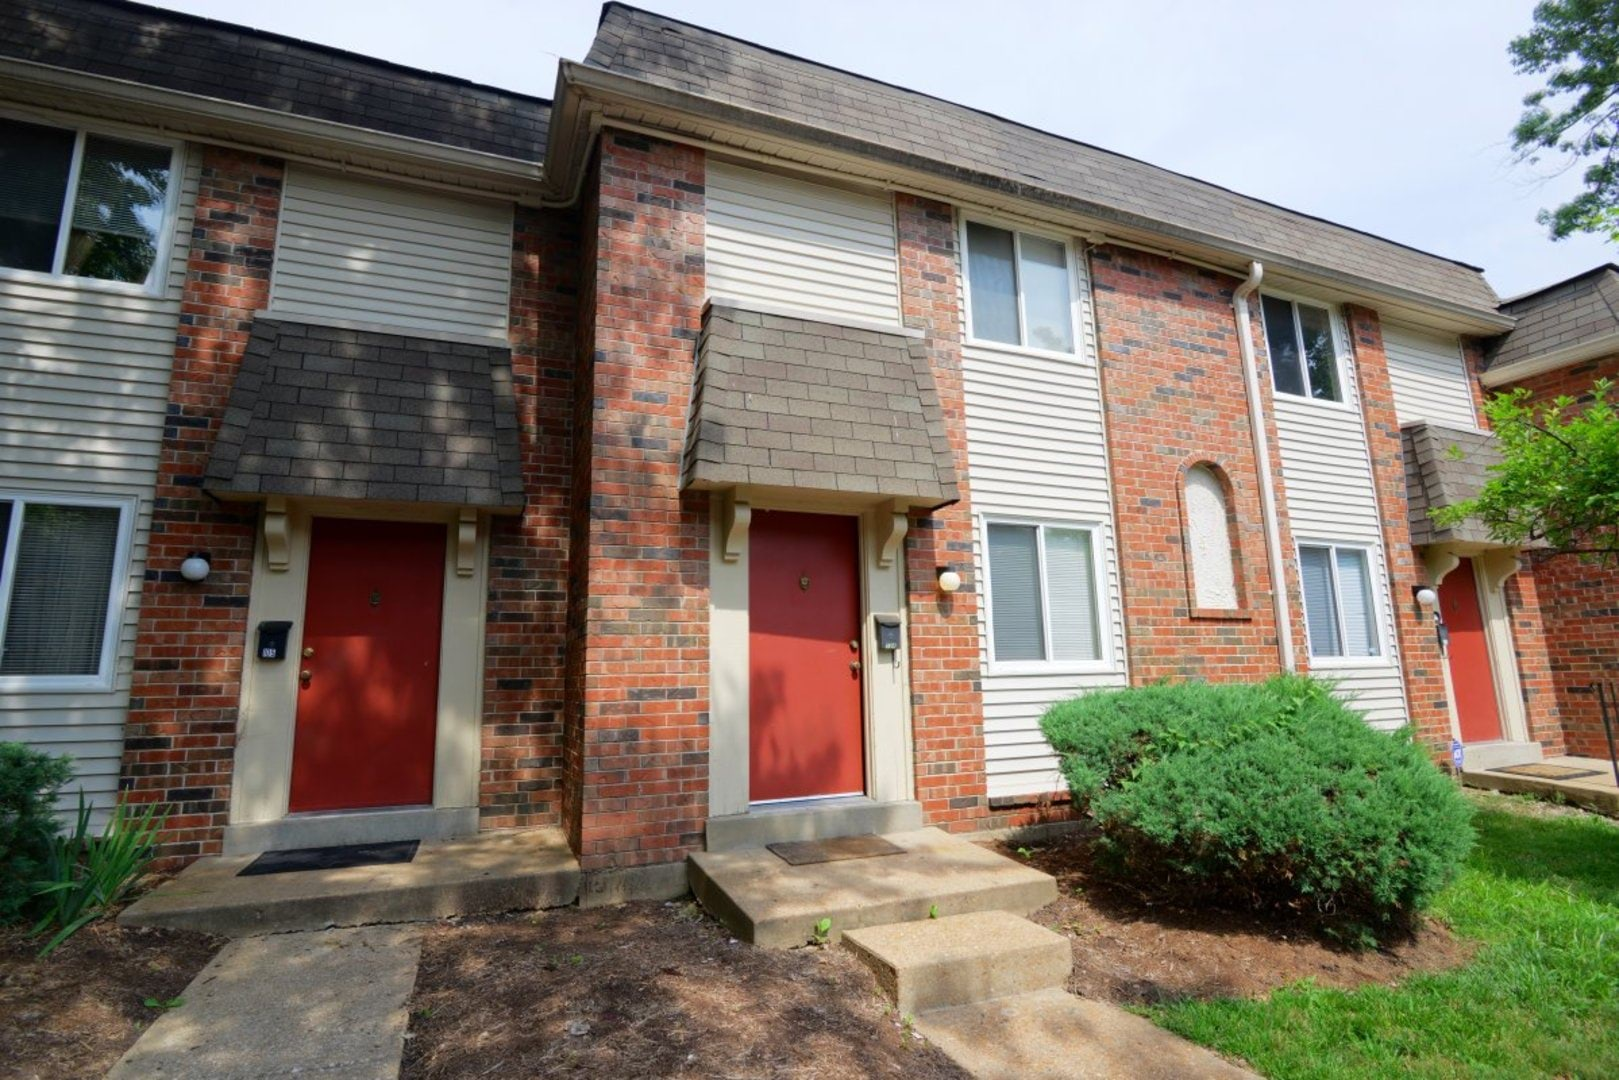 Park Meadows Apartments in Manchester, MO